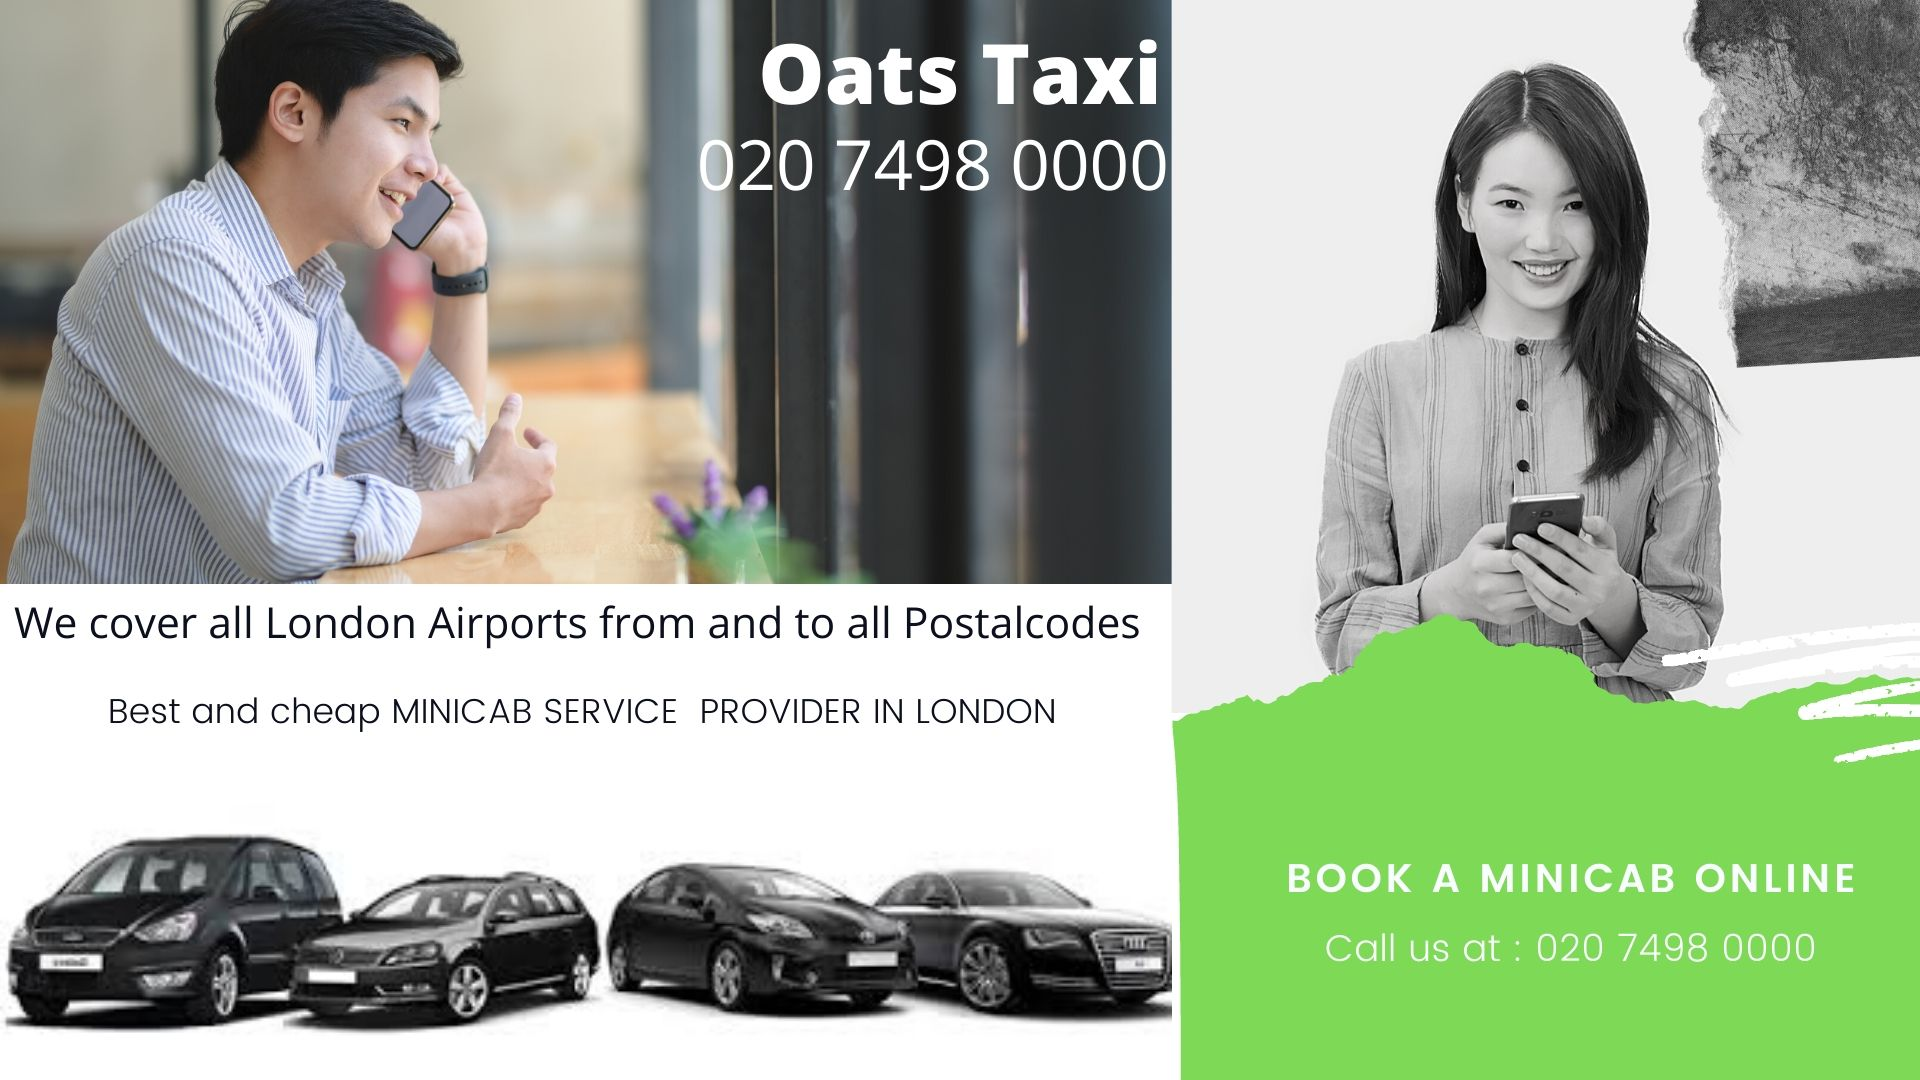 Nearest Minicab Office in Wandsworth | Minicab Gatwick Airport | Call now : 02074980000